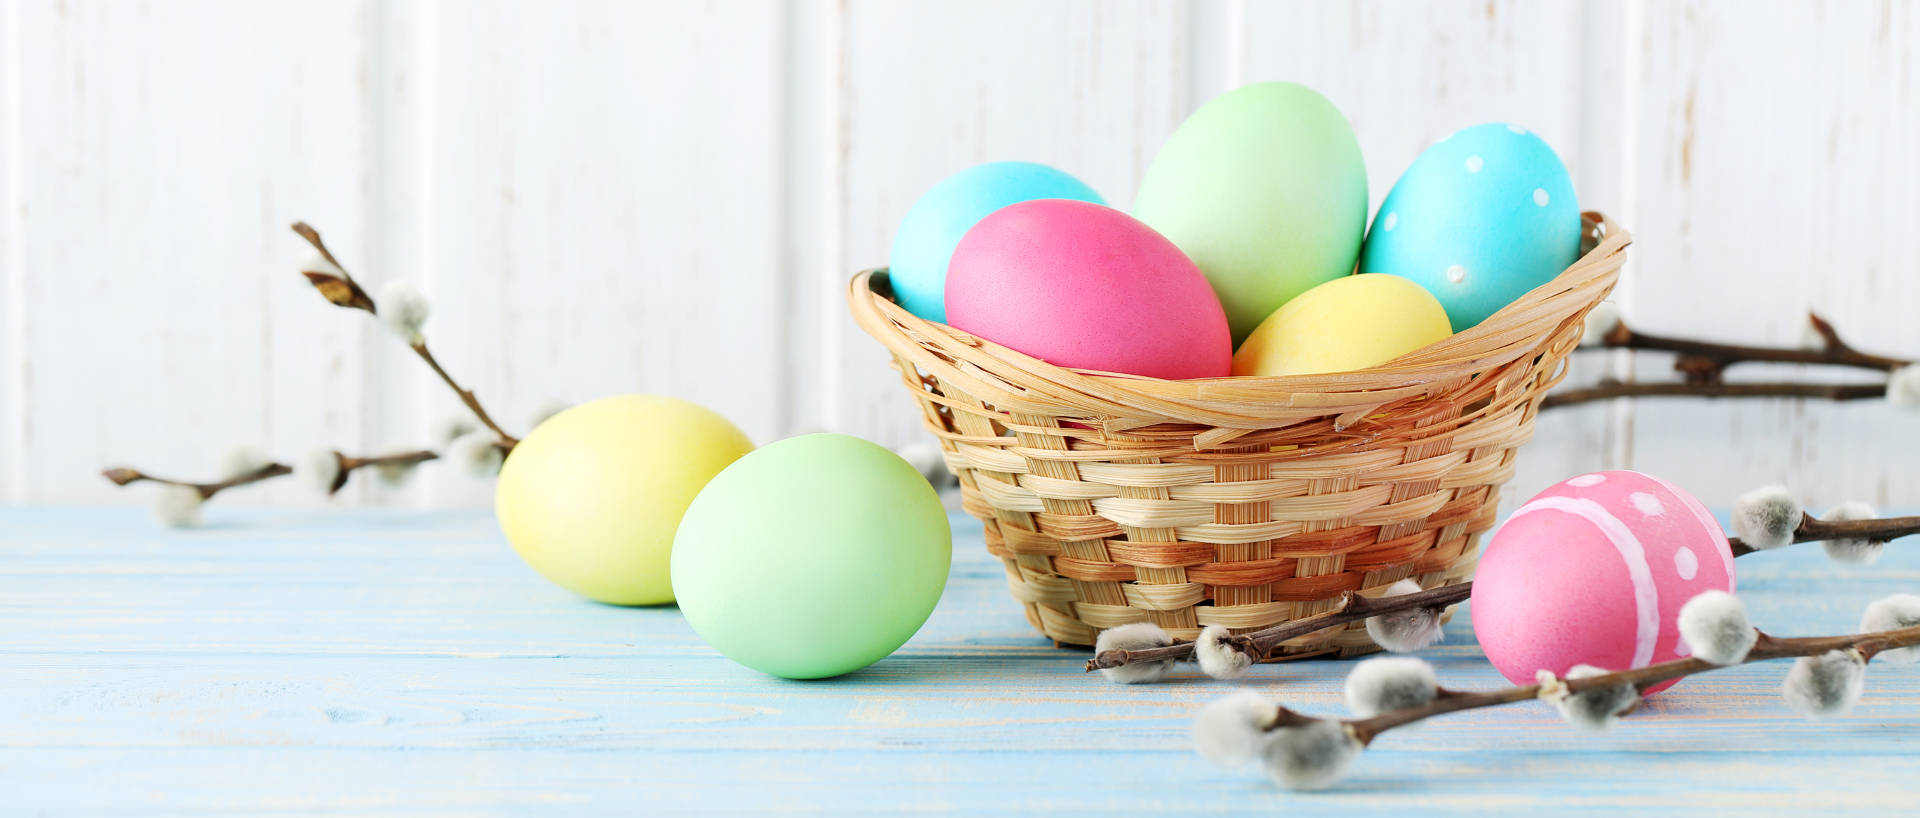 Easter eggs in a wicket basket